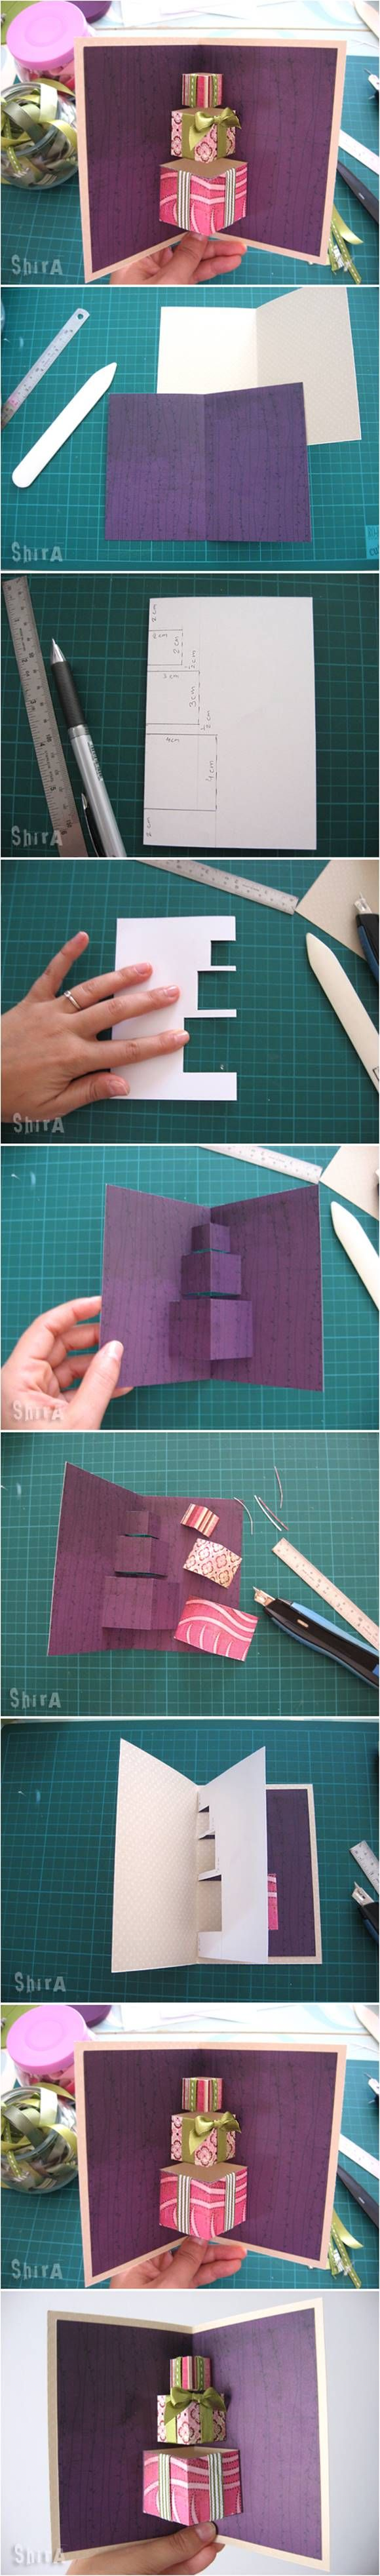 How to DIY 3D Gift Box Pop-up Card #craft #greeting_card